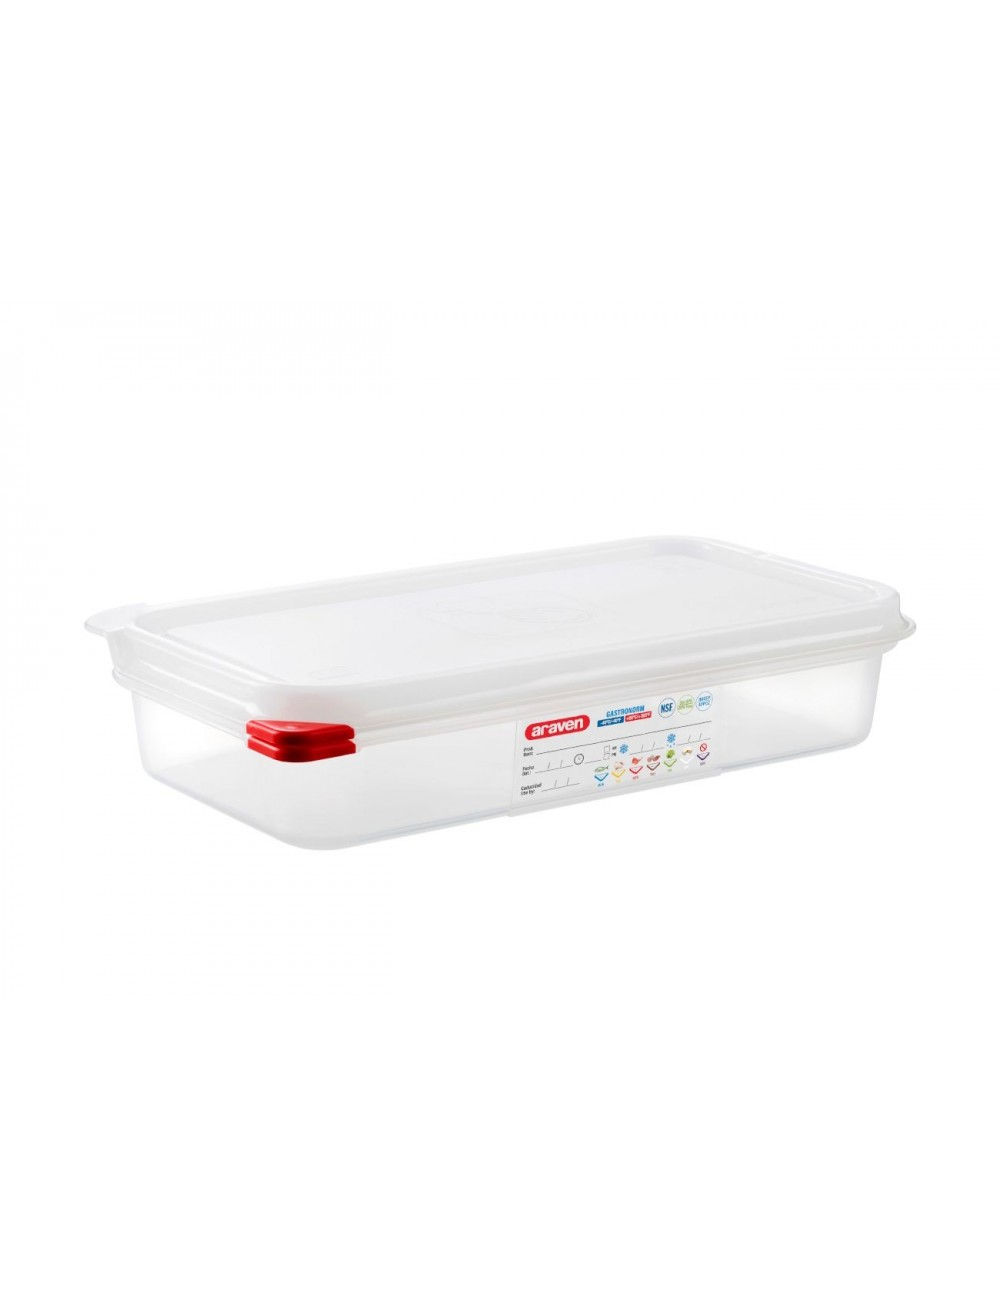 AIRTIGHT CONTAINER - GN 1/3 - Height 65 mm